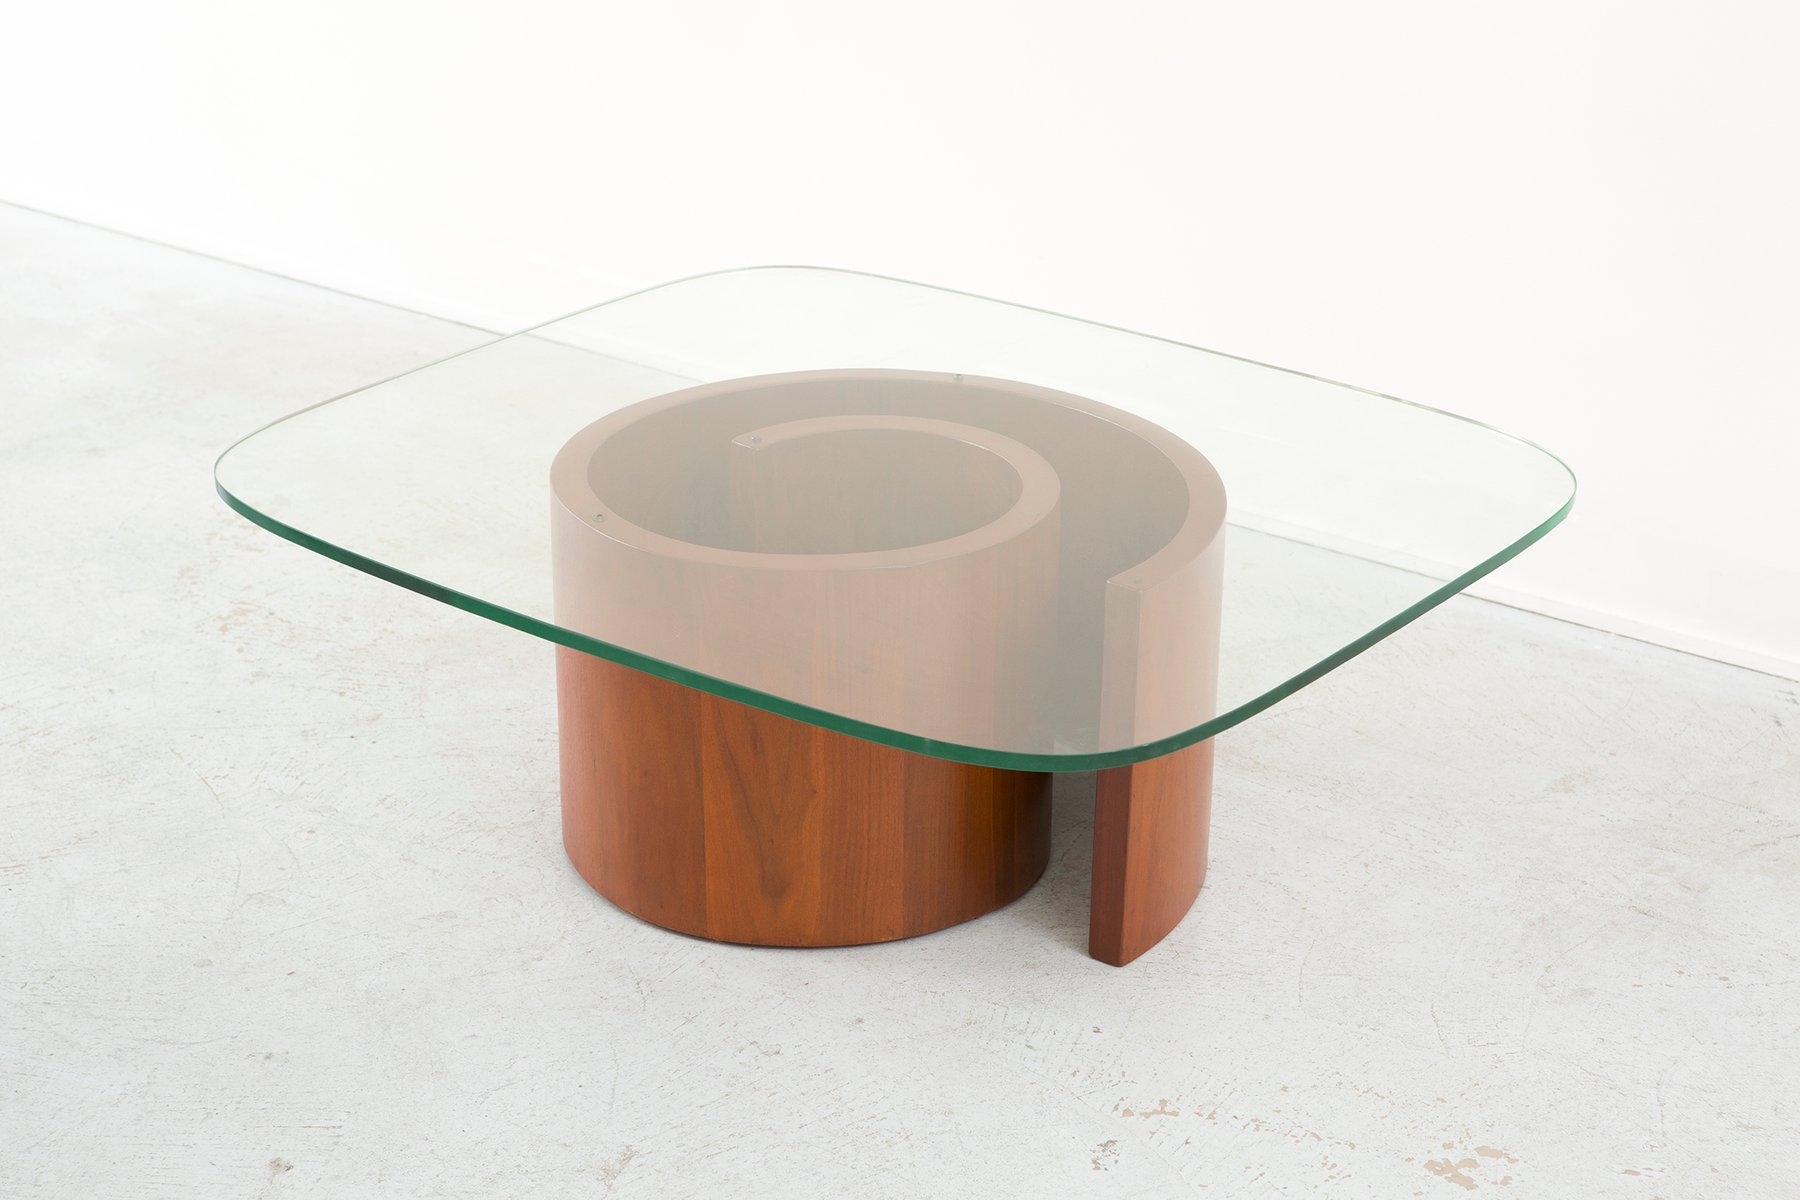 Snail Coffee Table By Vladimir Kagan For Selig 1950s For Sale At Pamono